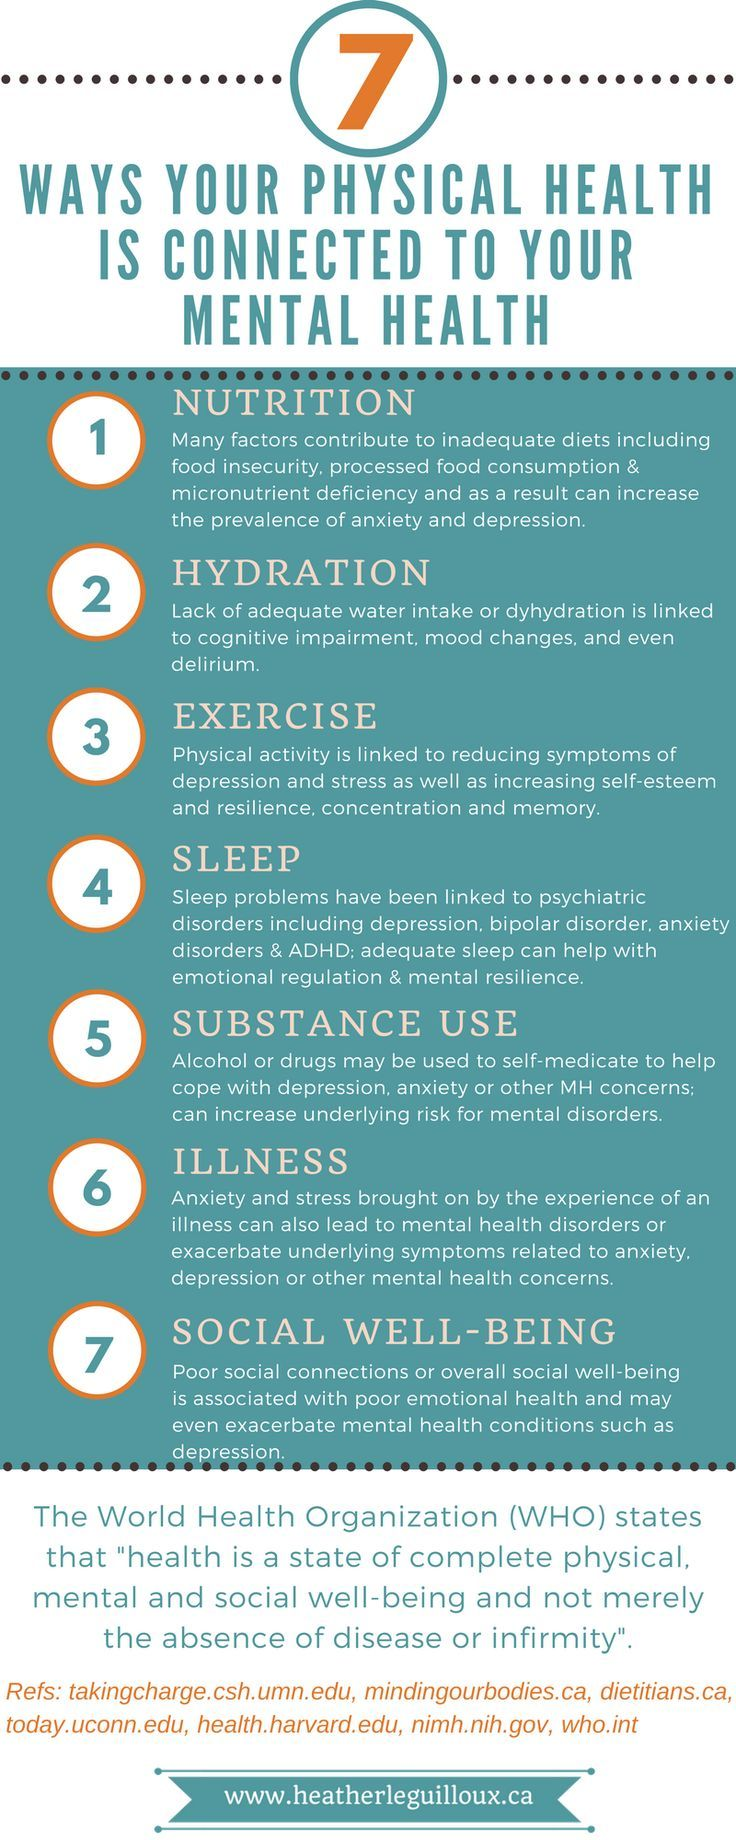 Mental health residential treatment centers